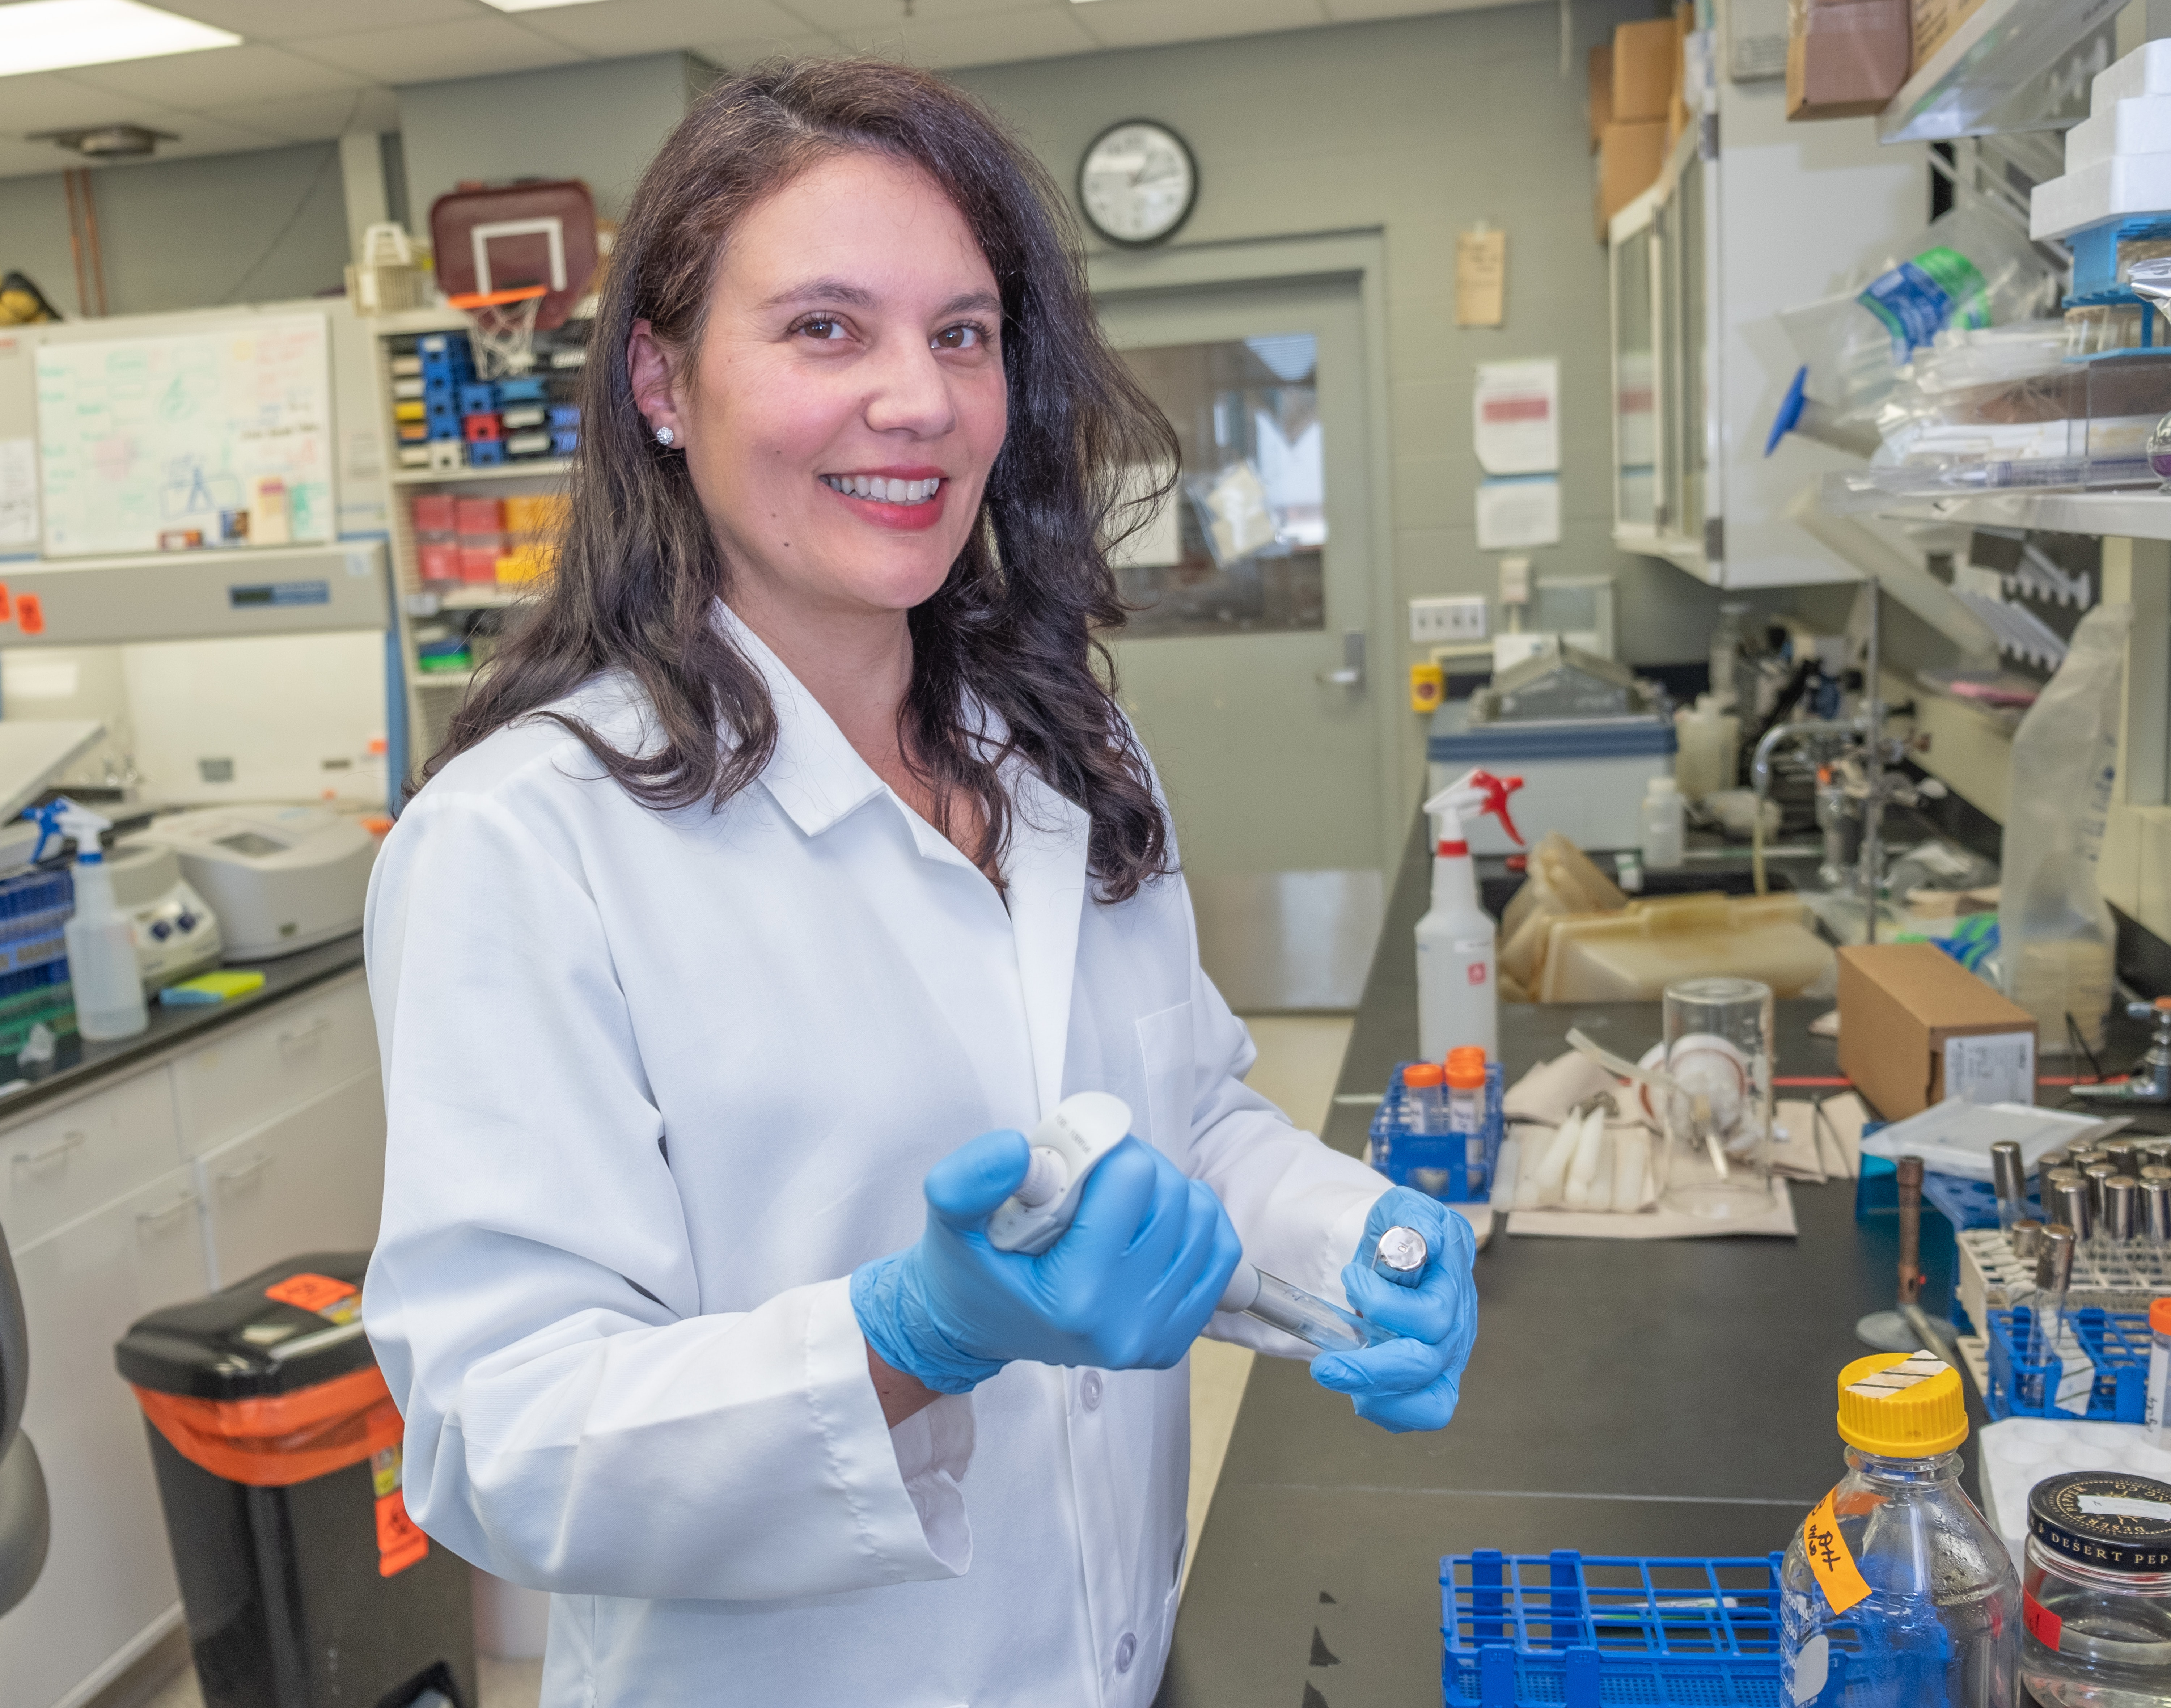 Alessandra Agostinho Hunt measures biofilm formation of Psuedomonas aerugionsa by pipetting in the purple dye crystal violet to stain the microbial structure.